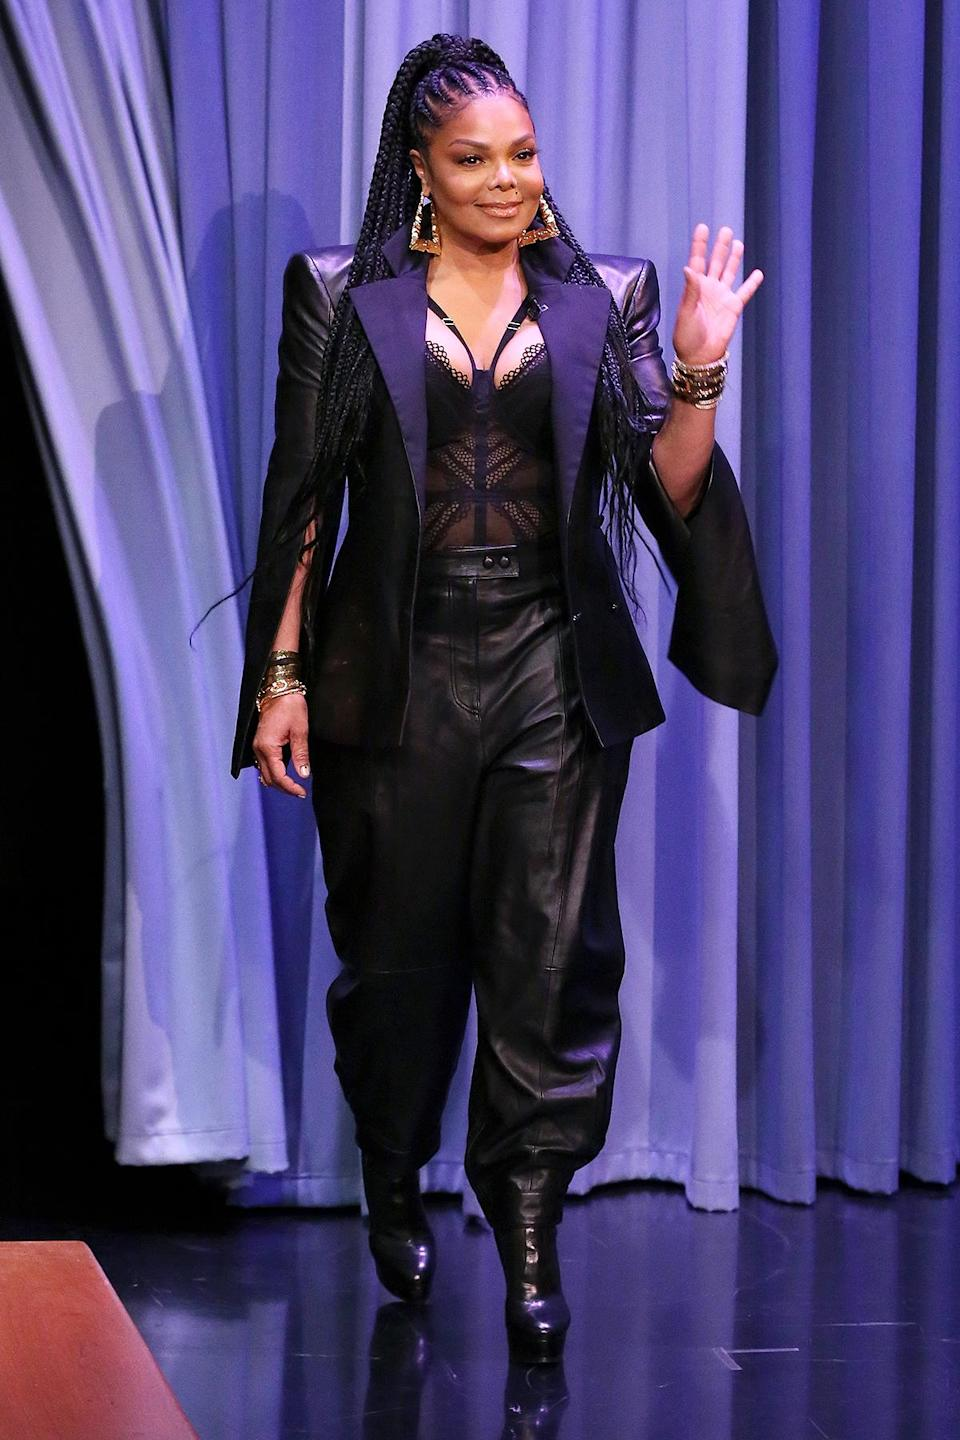 <p>The youngest child of the famous Jackson family, the Taurus singer managed to carve out a path for herself. Her birthday is May 15. </p>